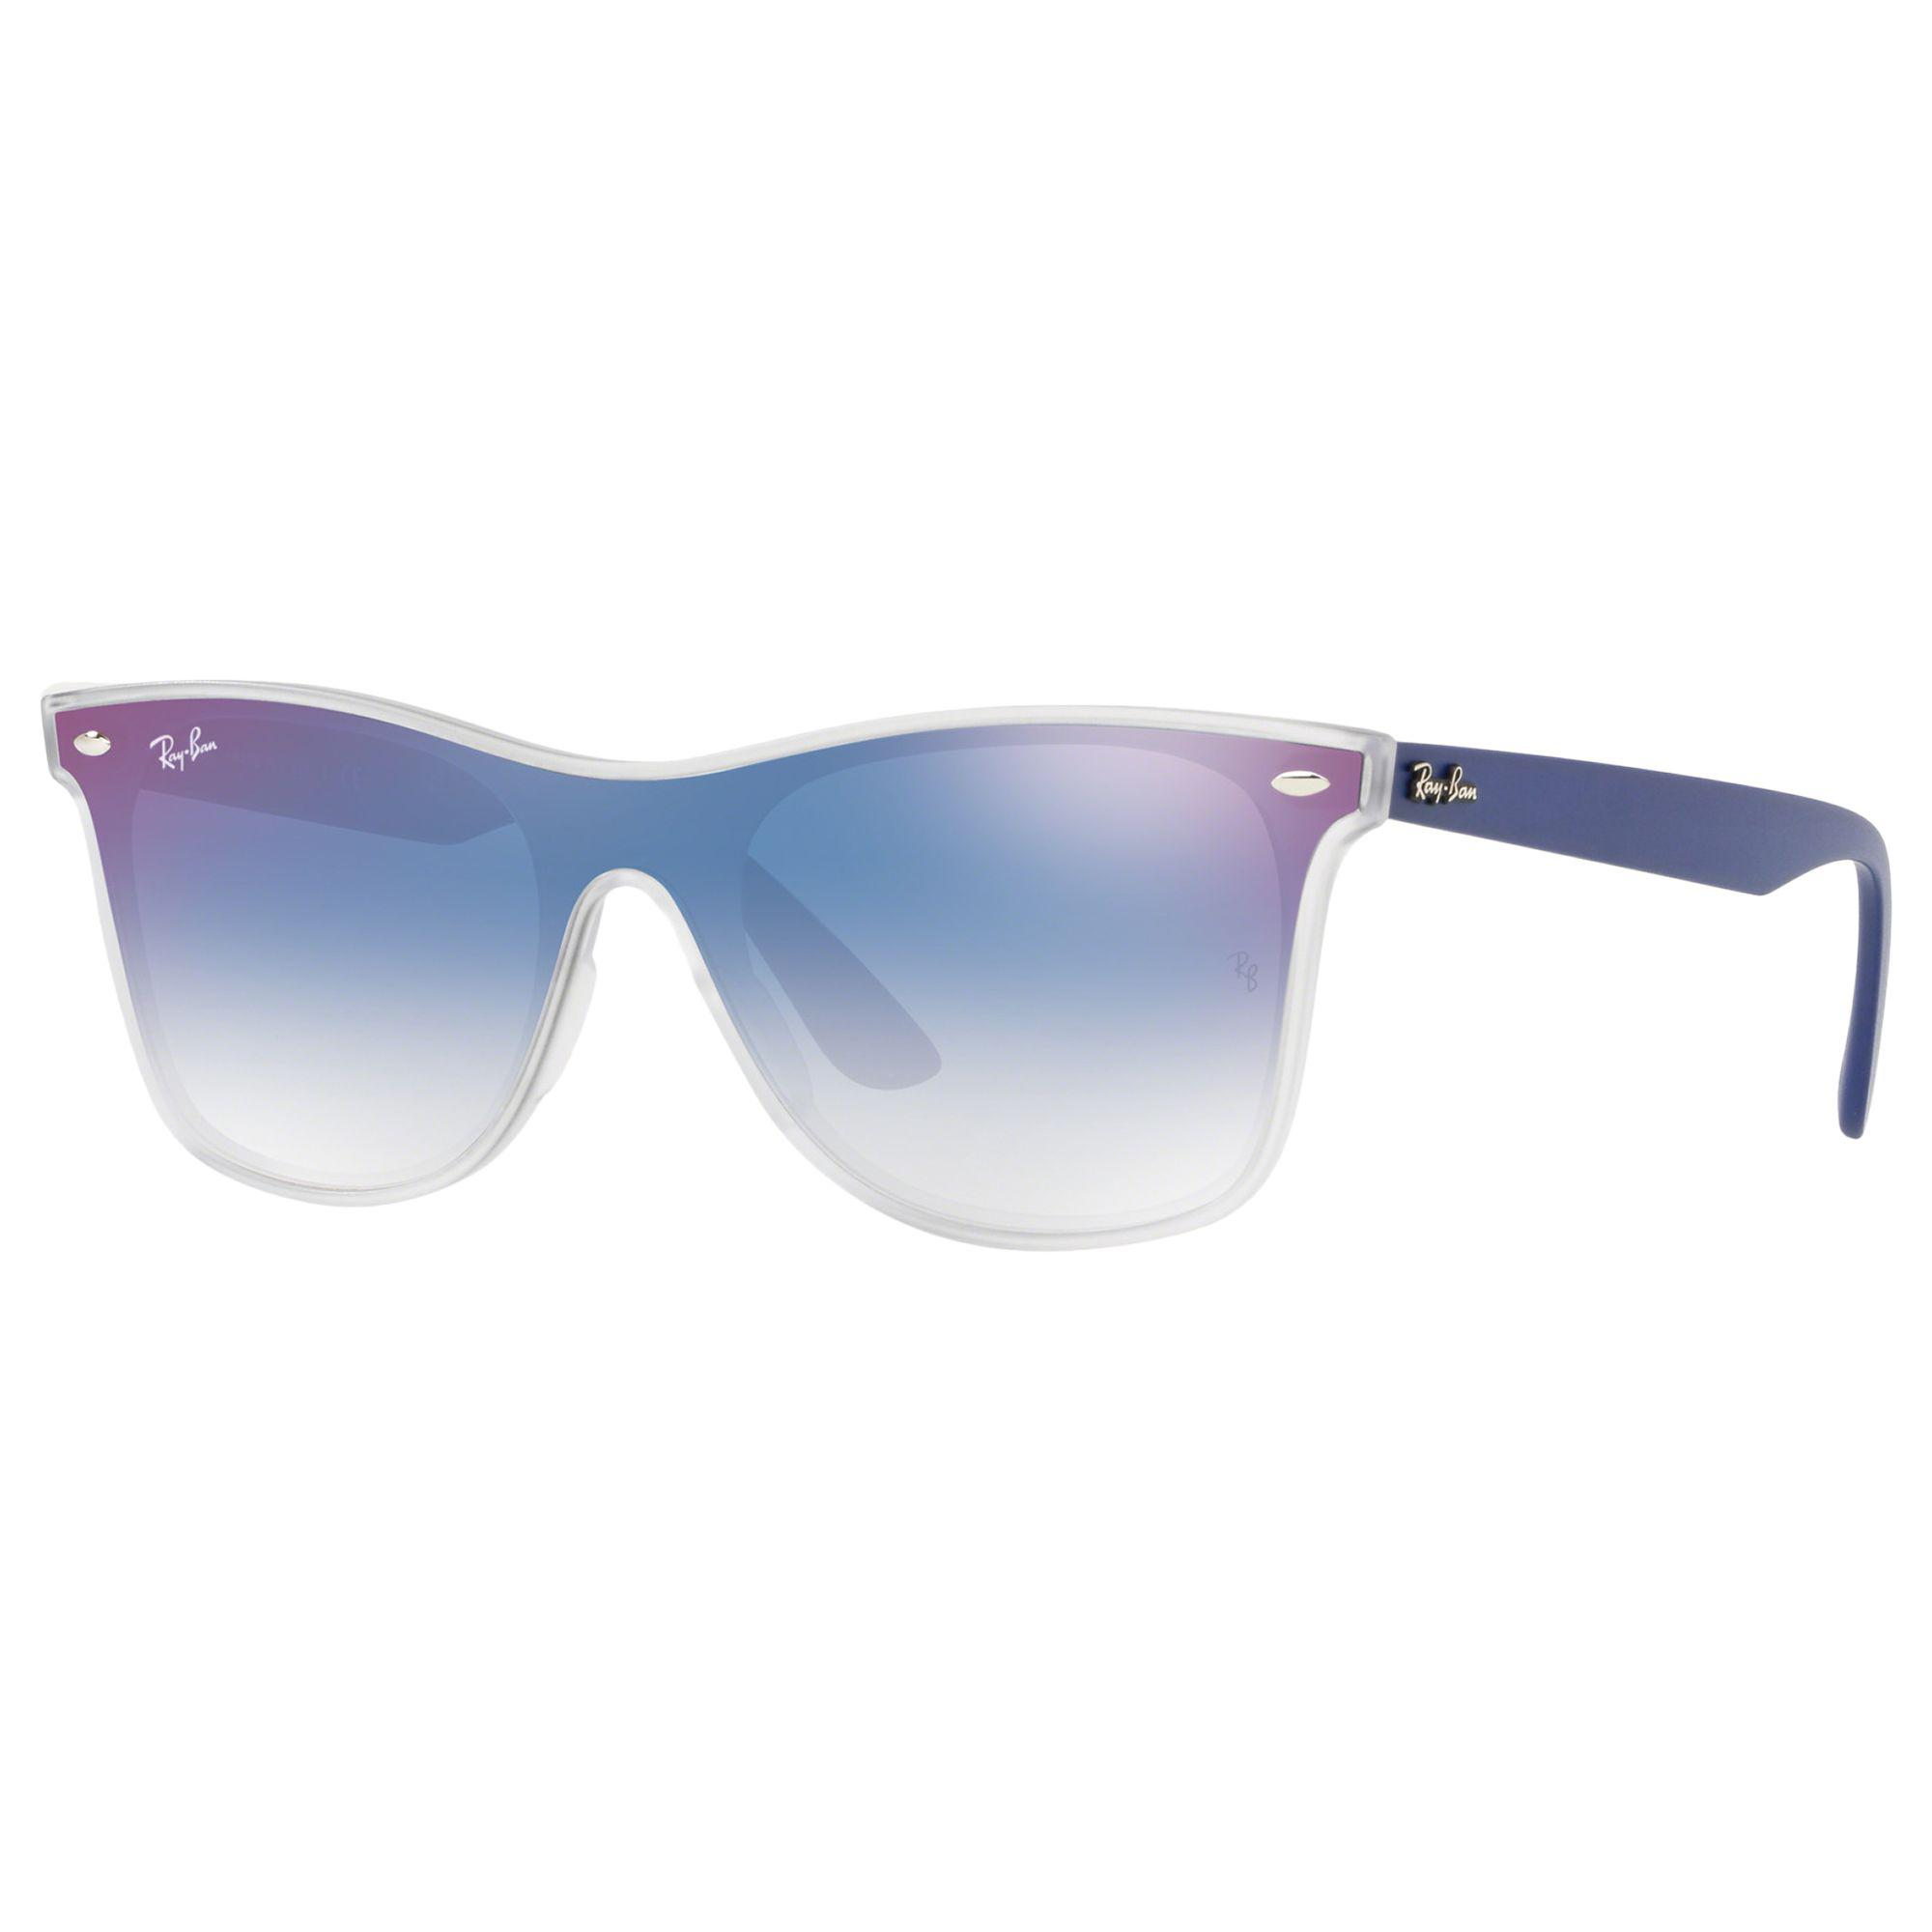 10528caf328 Ray-Ban Rb4440 Unisex Polarised Mirrored Sunglasses in Blue - Lyst